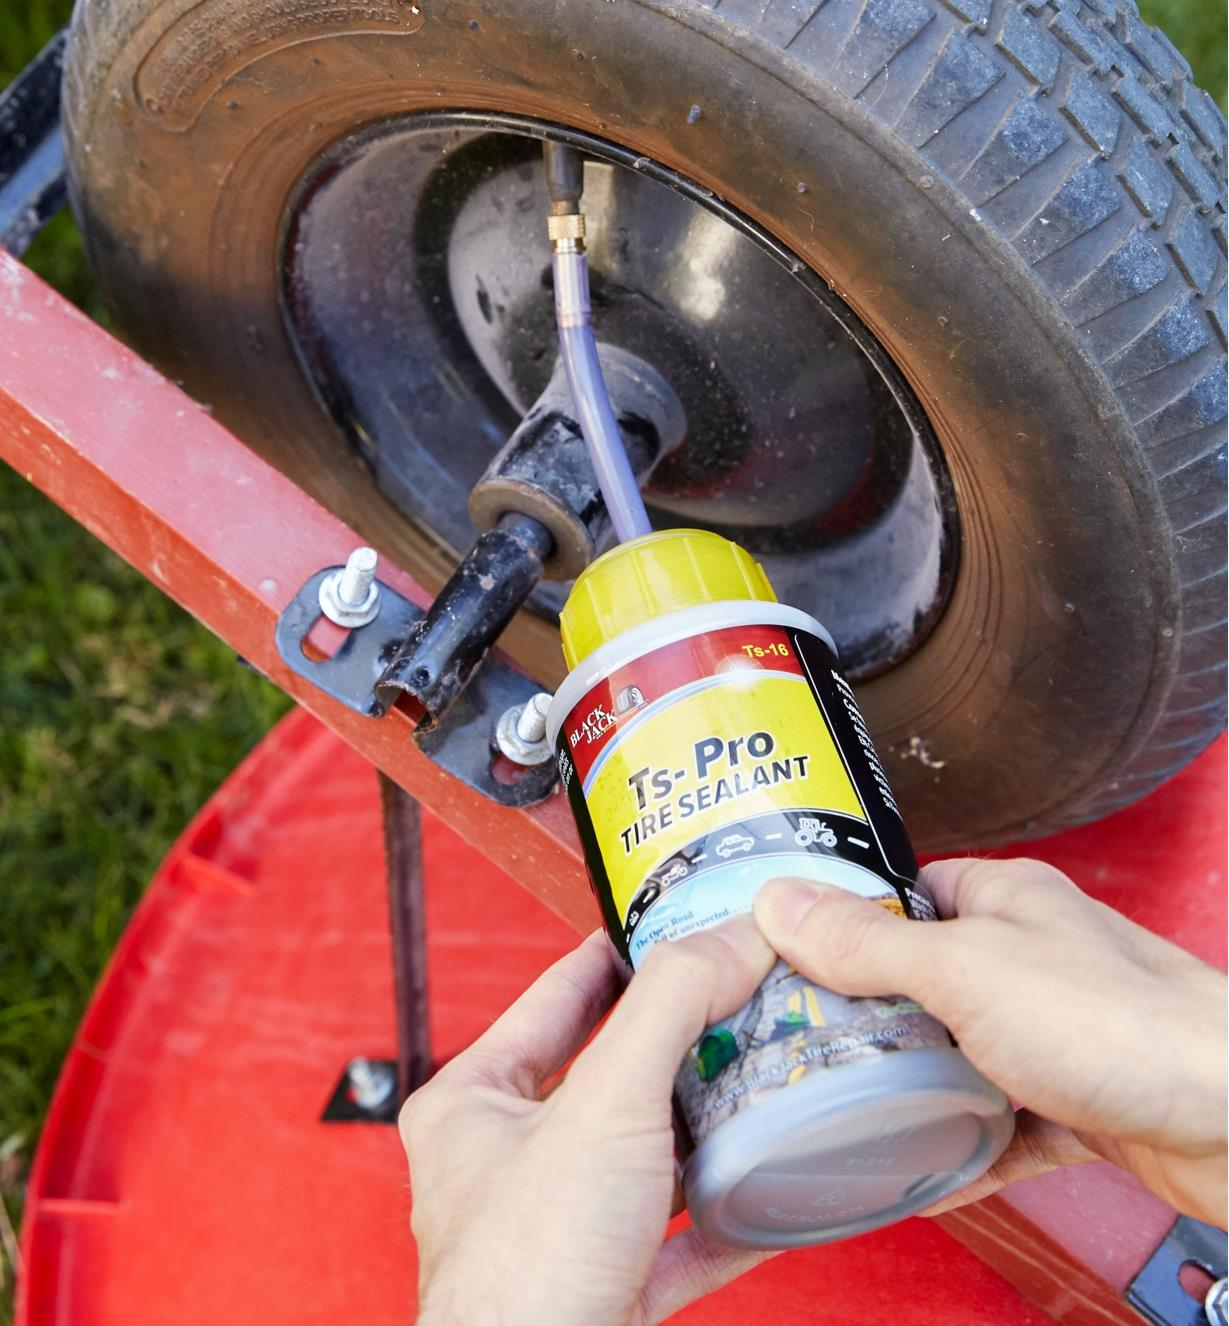 Adding Ts-Pro tire sealant to a wheelbarrow tire